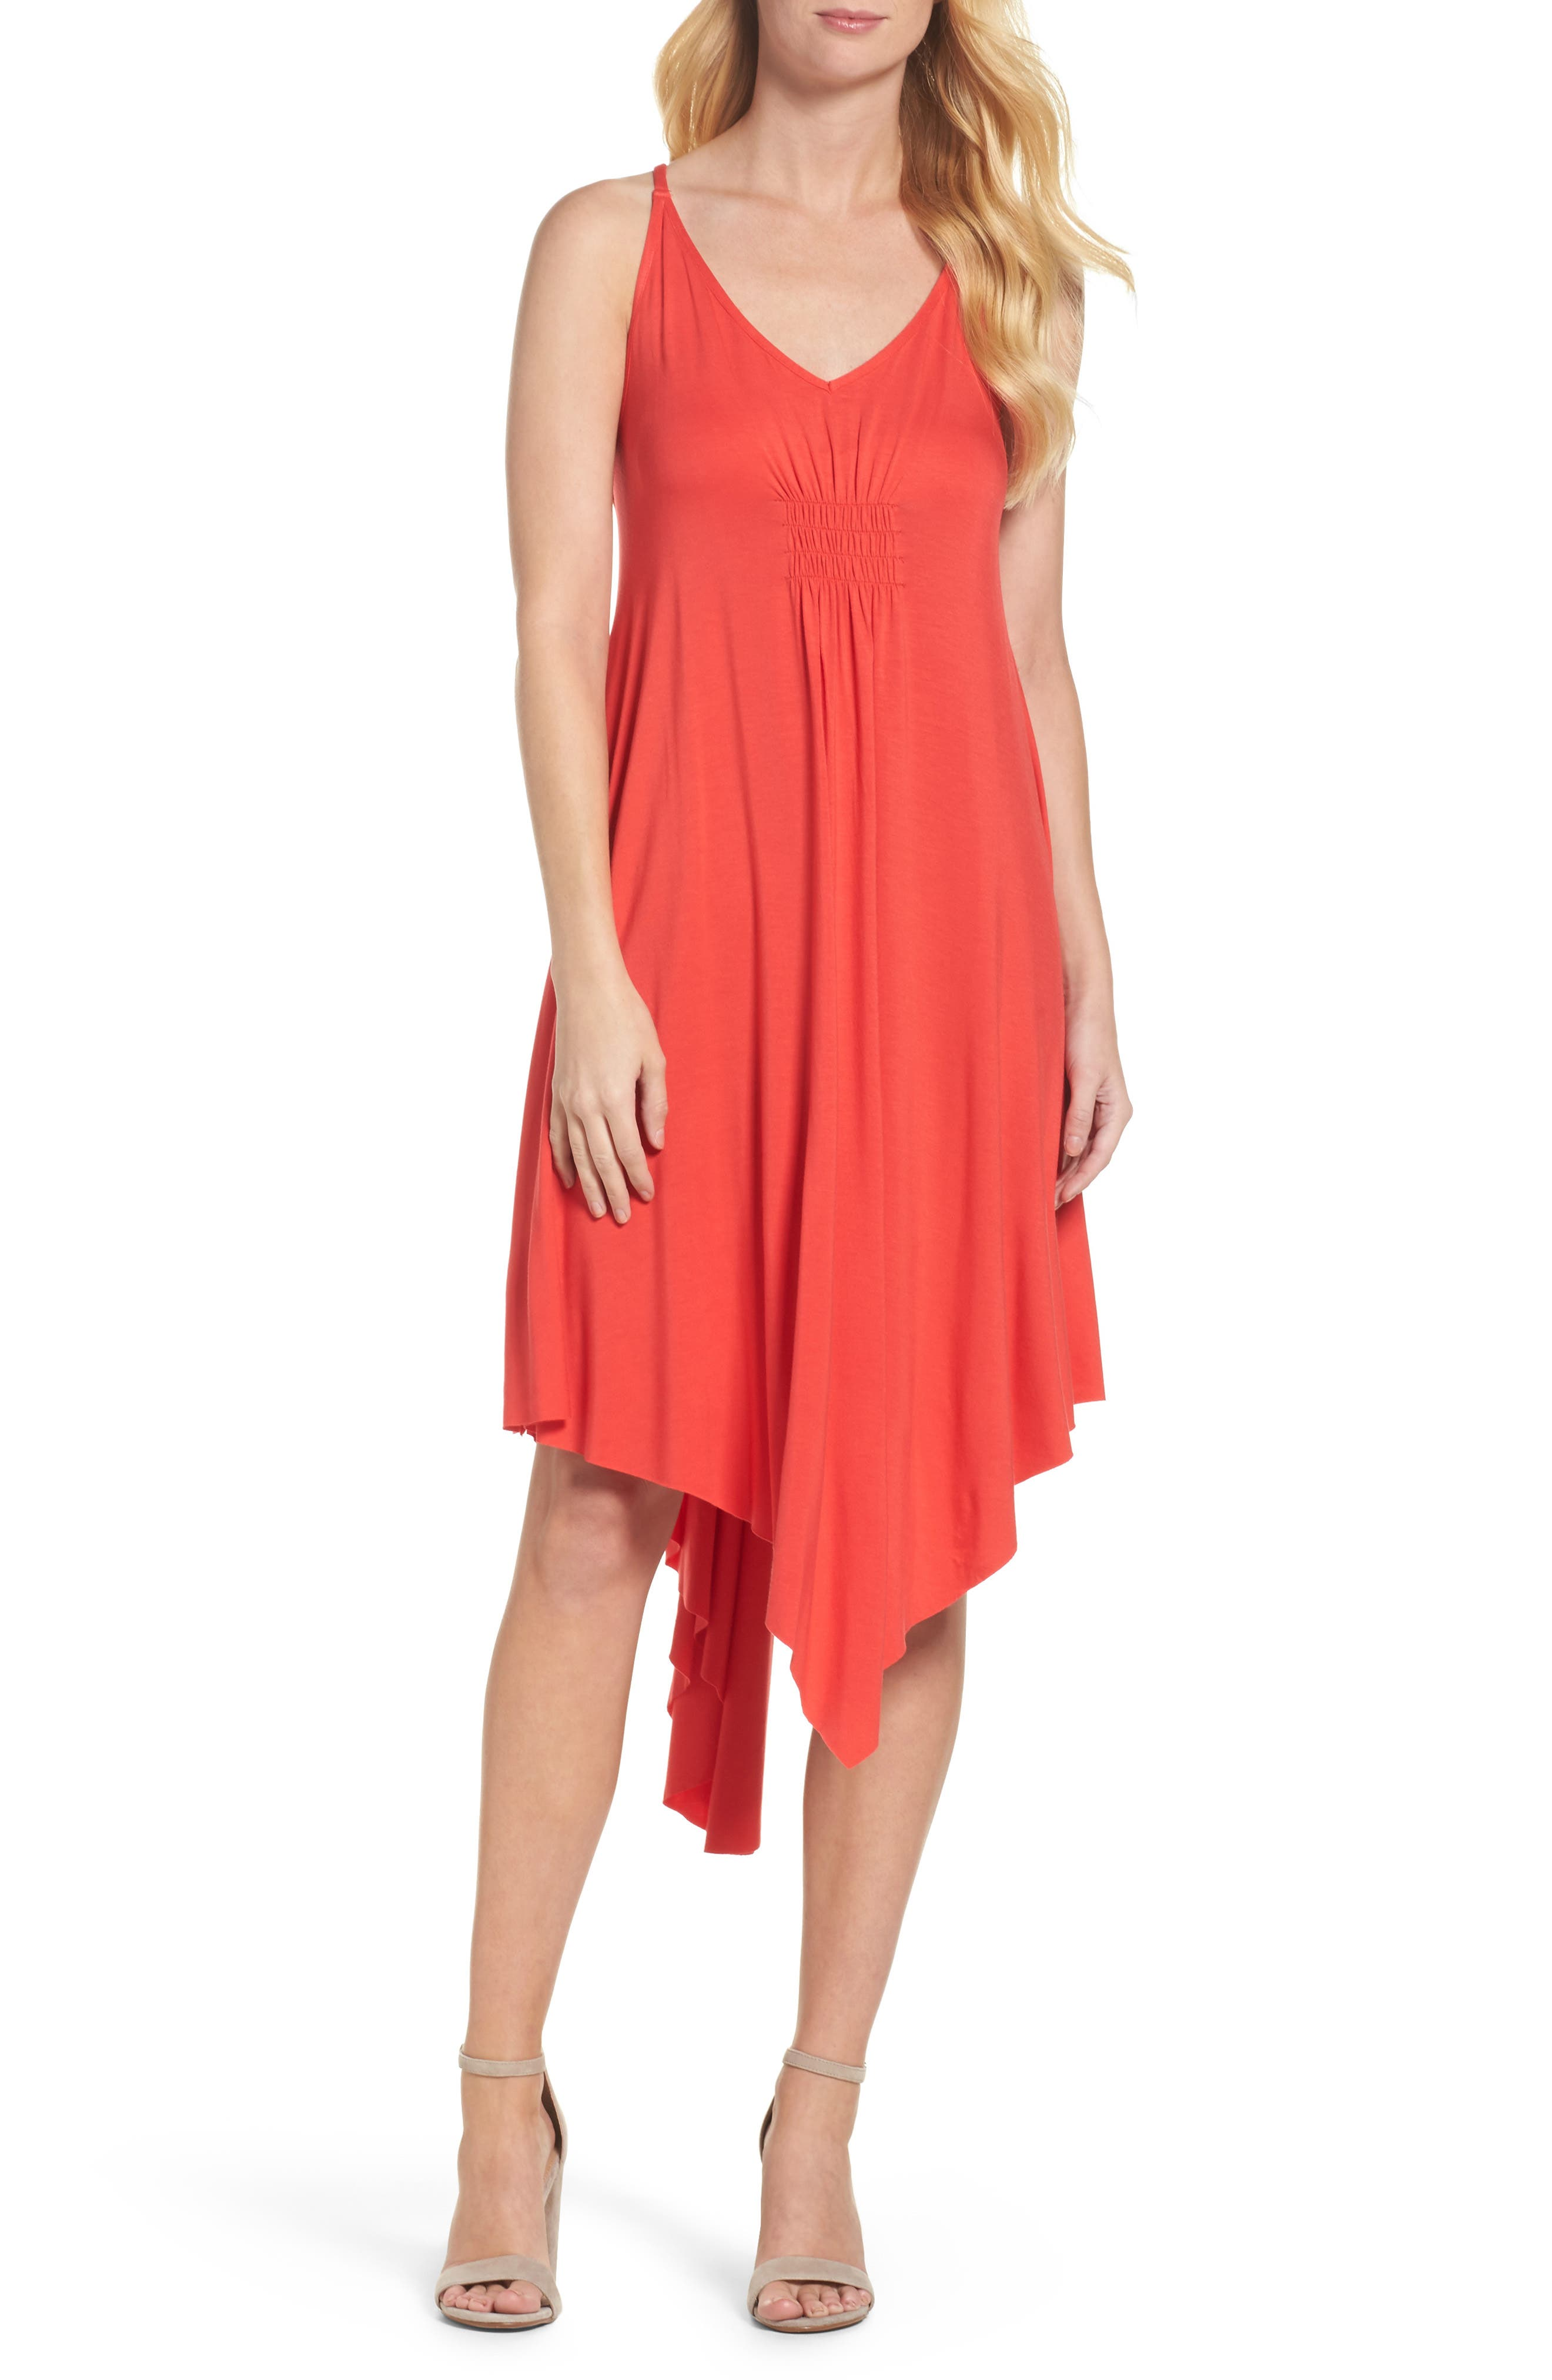 Felicity & Coco Luna Asymmetric Hem Dress (Nordstrom Exclusive)